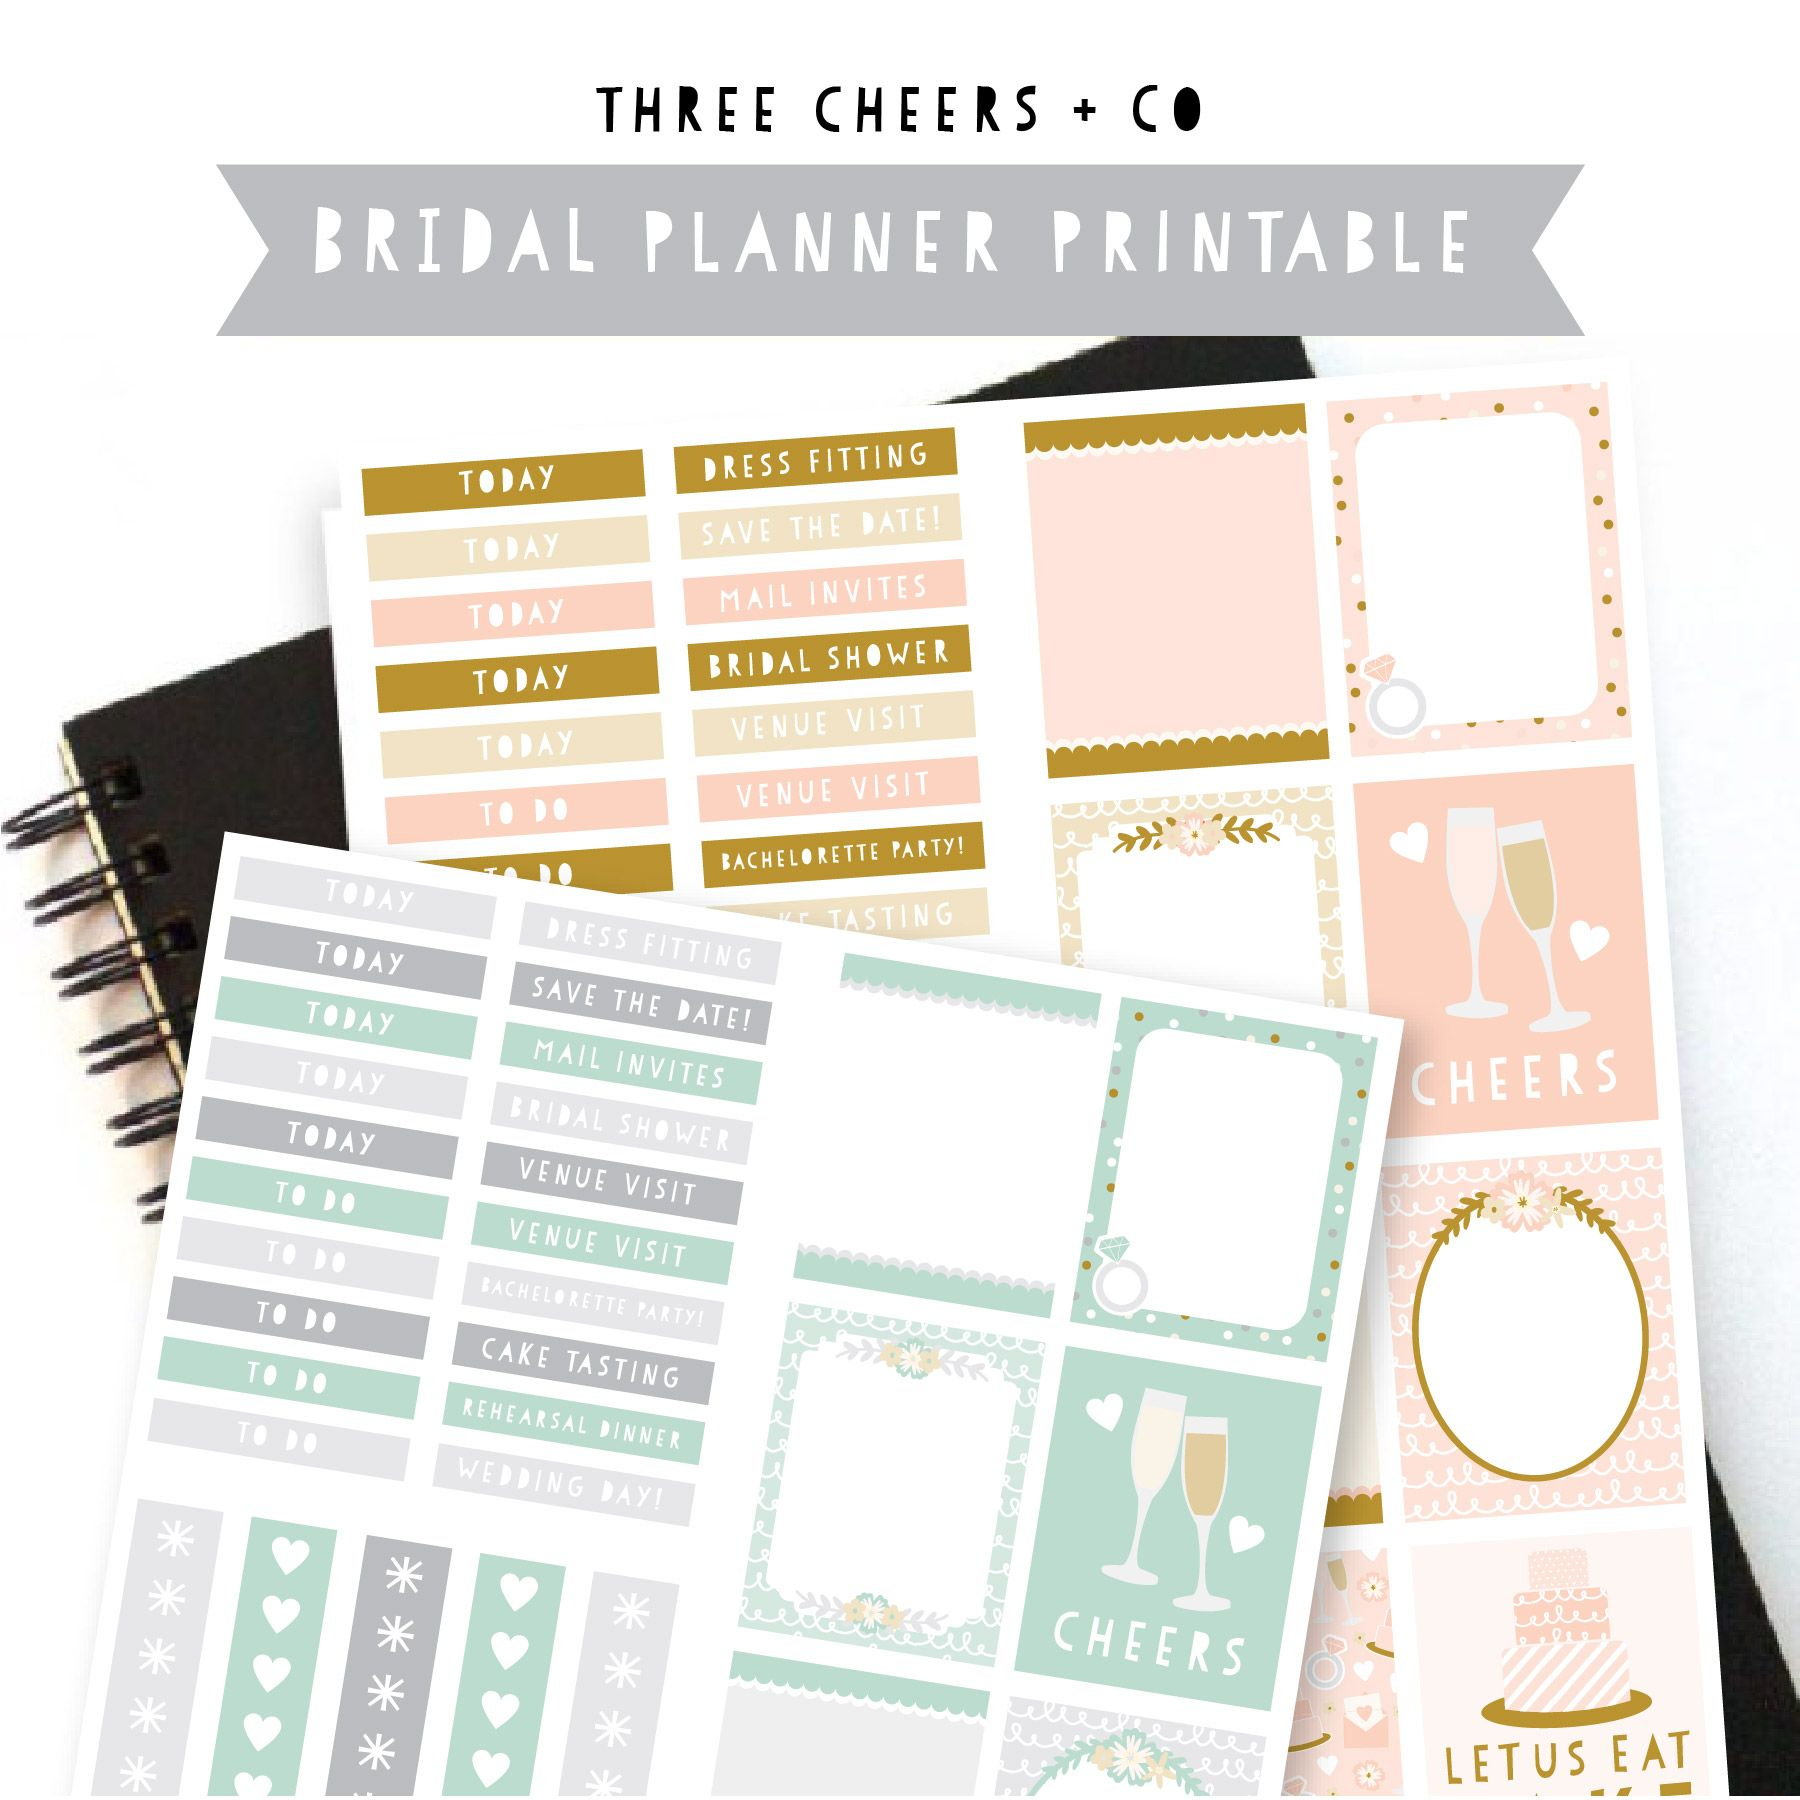 Get Ready For Your Wedding Day With A Free Bridal Planner Sticker Printable From Three Cheers